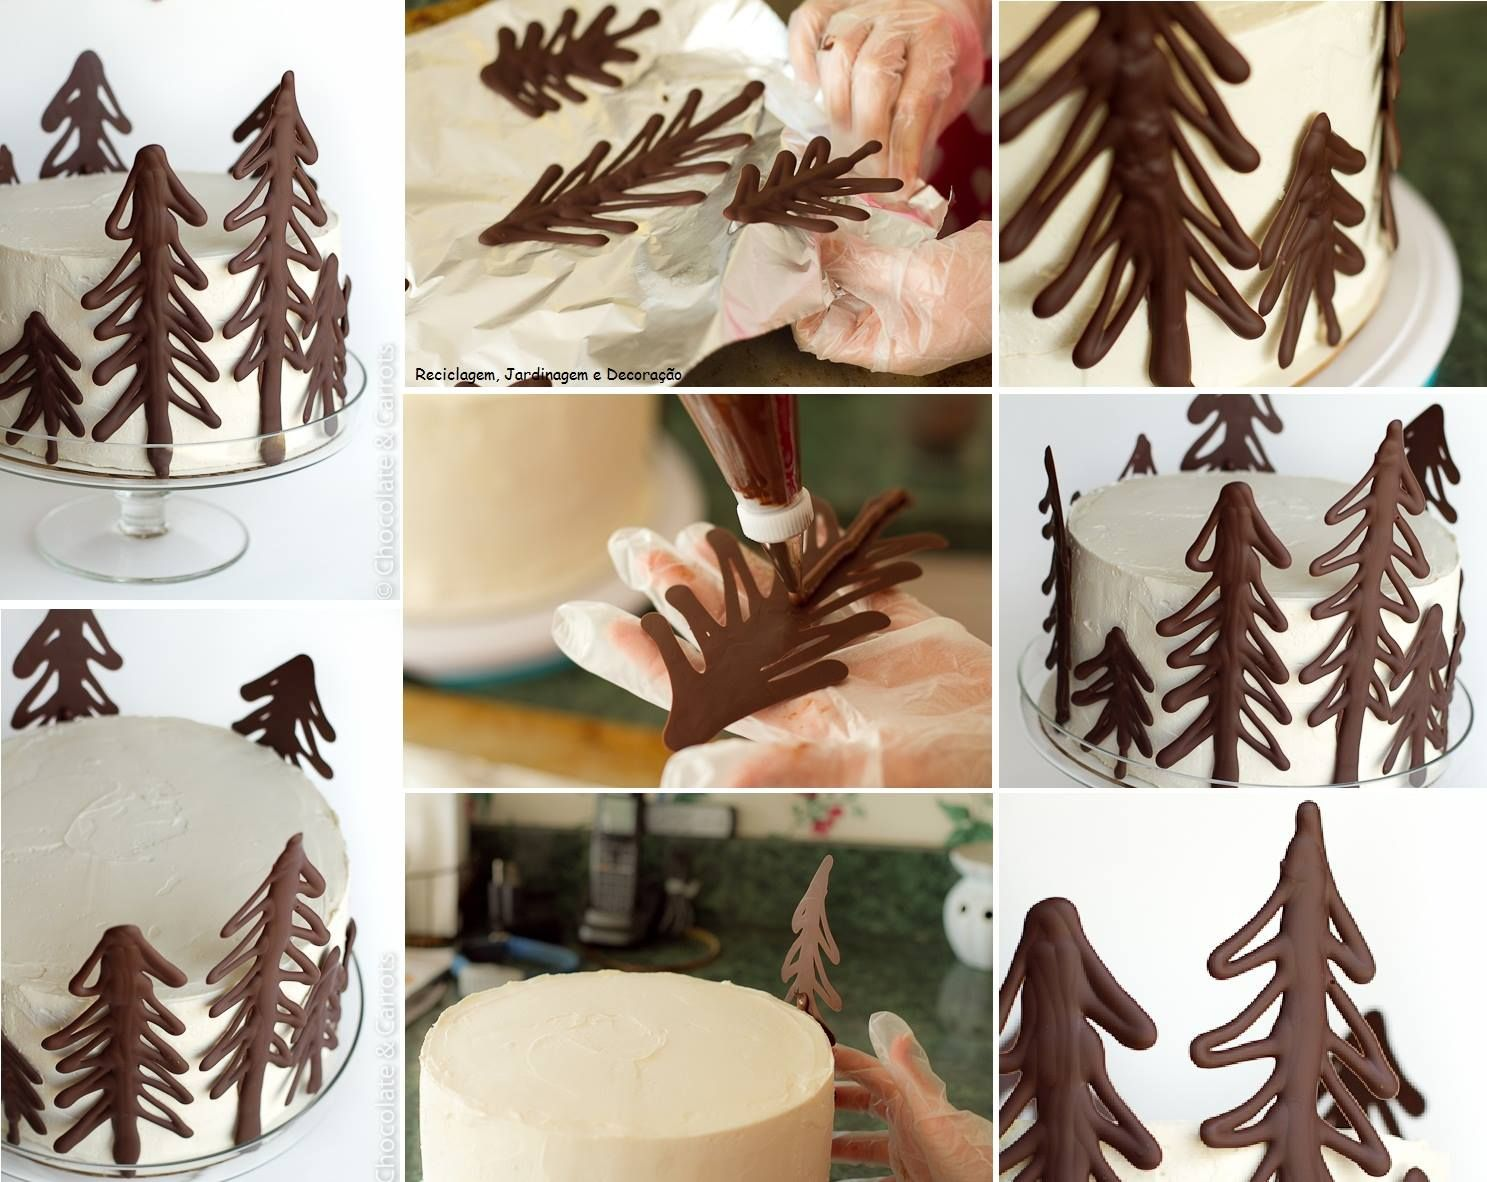 Chocolate Christmas tree decor on cake  Cooking  Pinterest